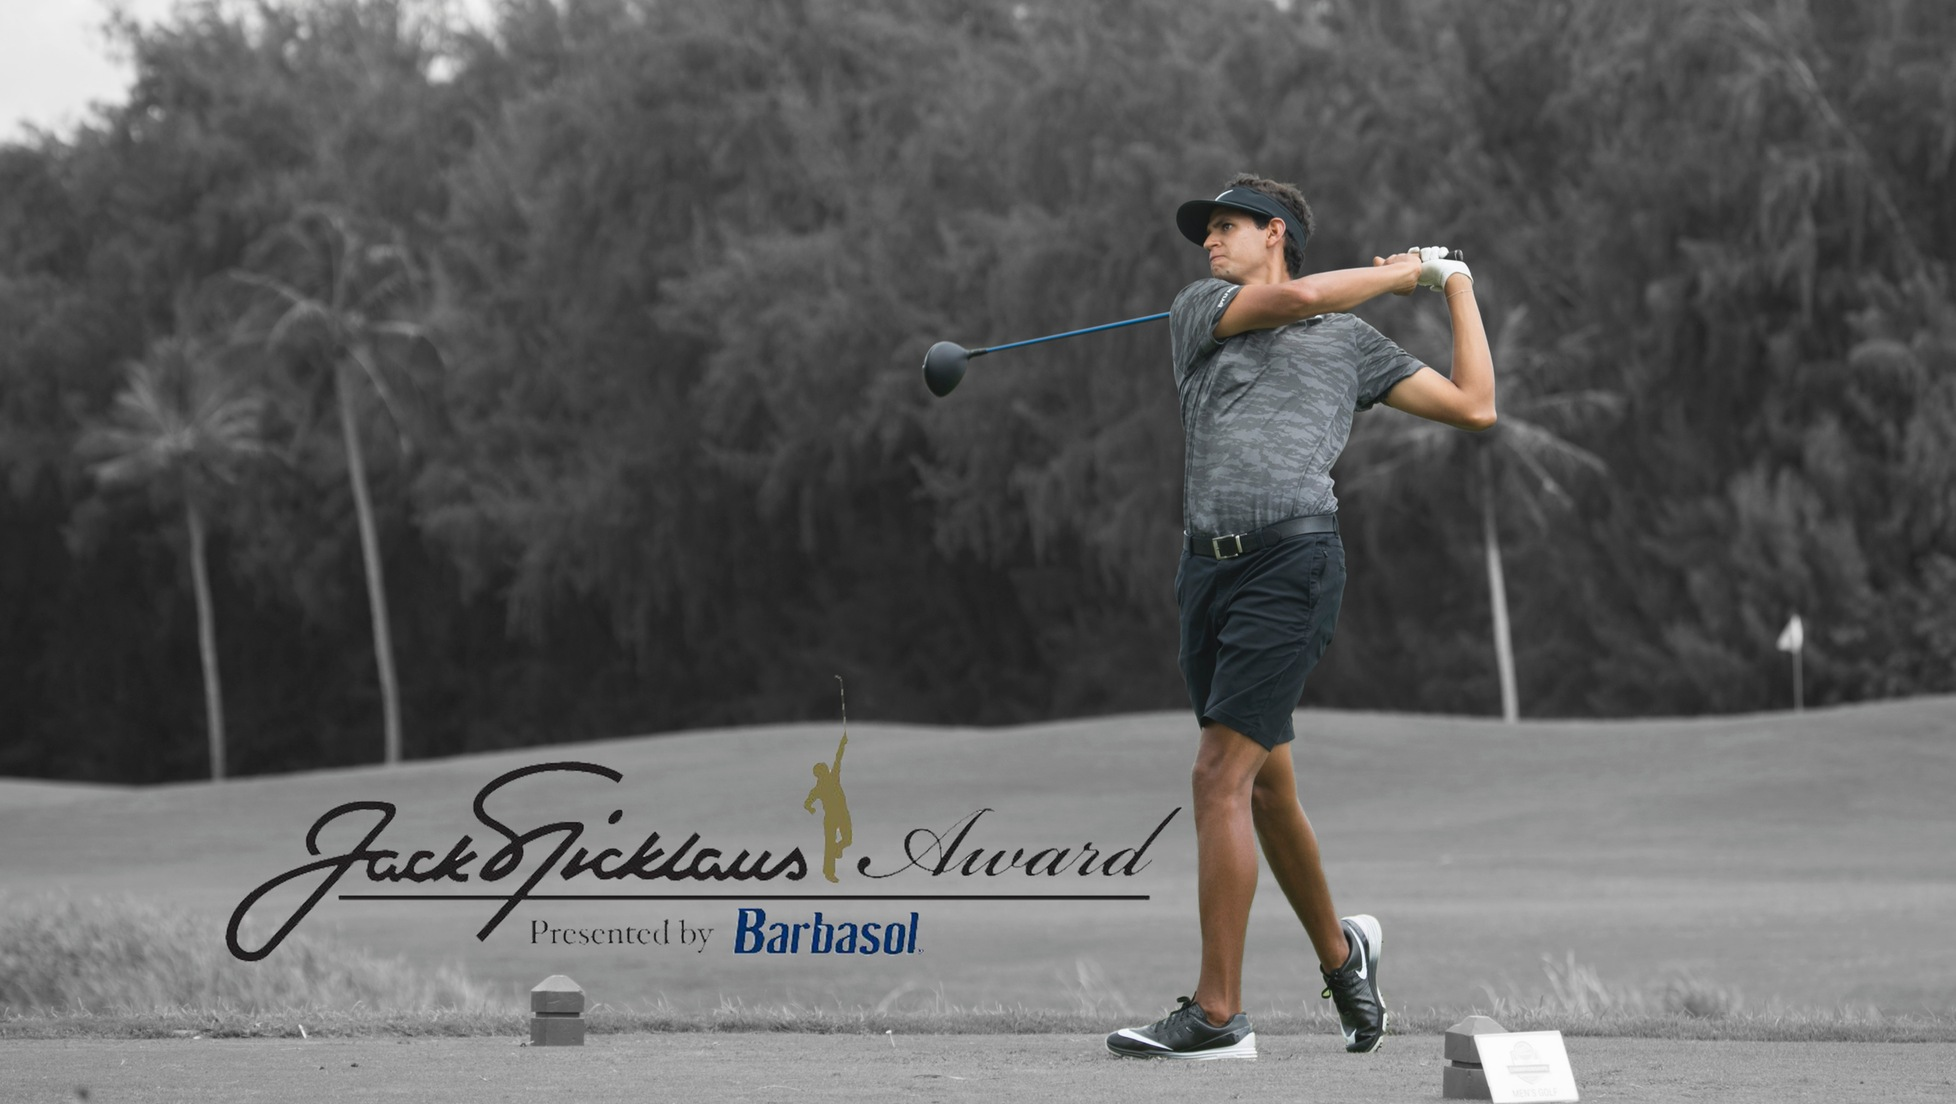 Nicolas Herrera was named a finalist for the 2017 Jack Nicklaus National Player of the Year Award.